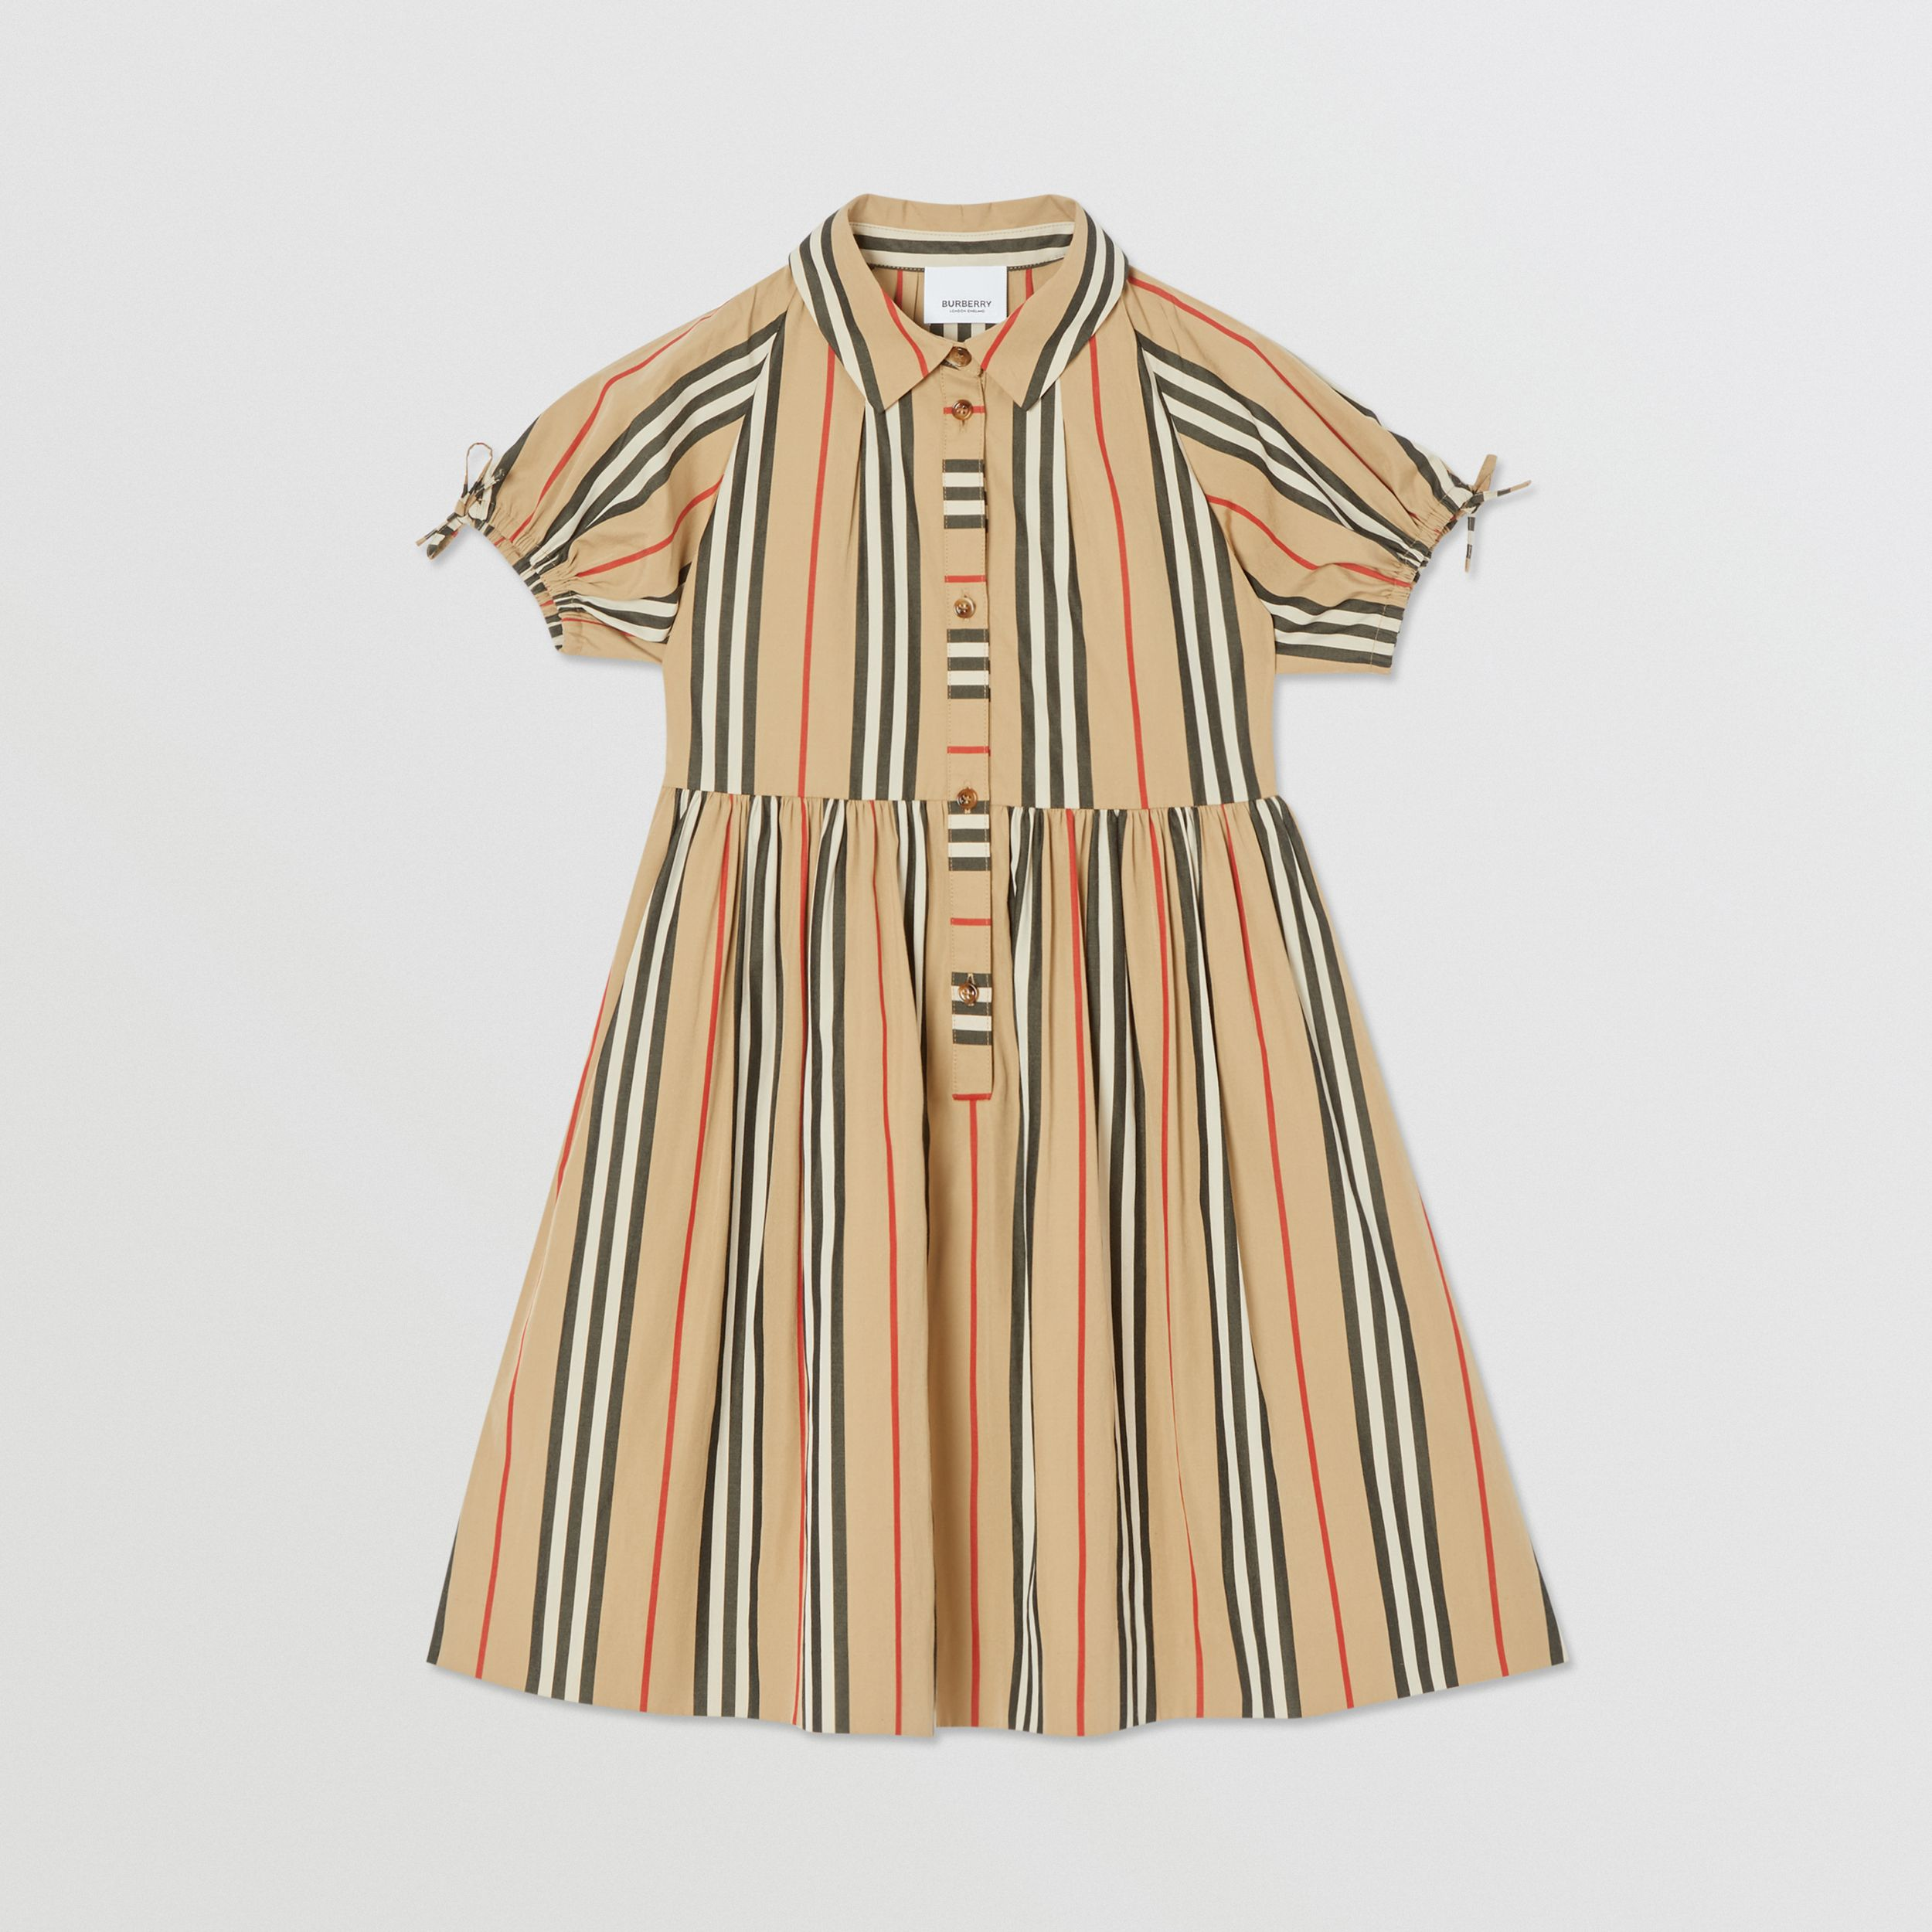 Icon Stripe Cotton Poplin Dress in Archive Beige | Burberry - 1